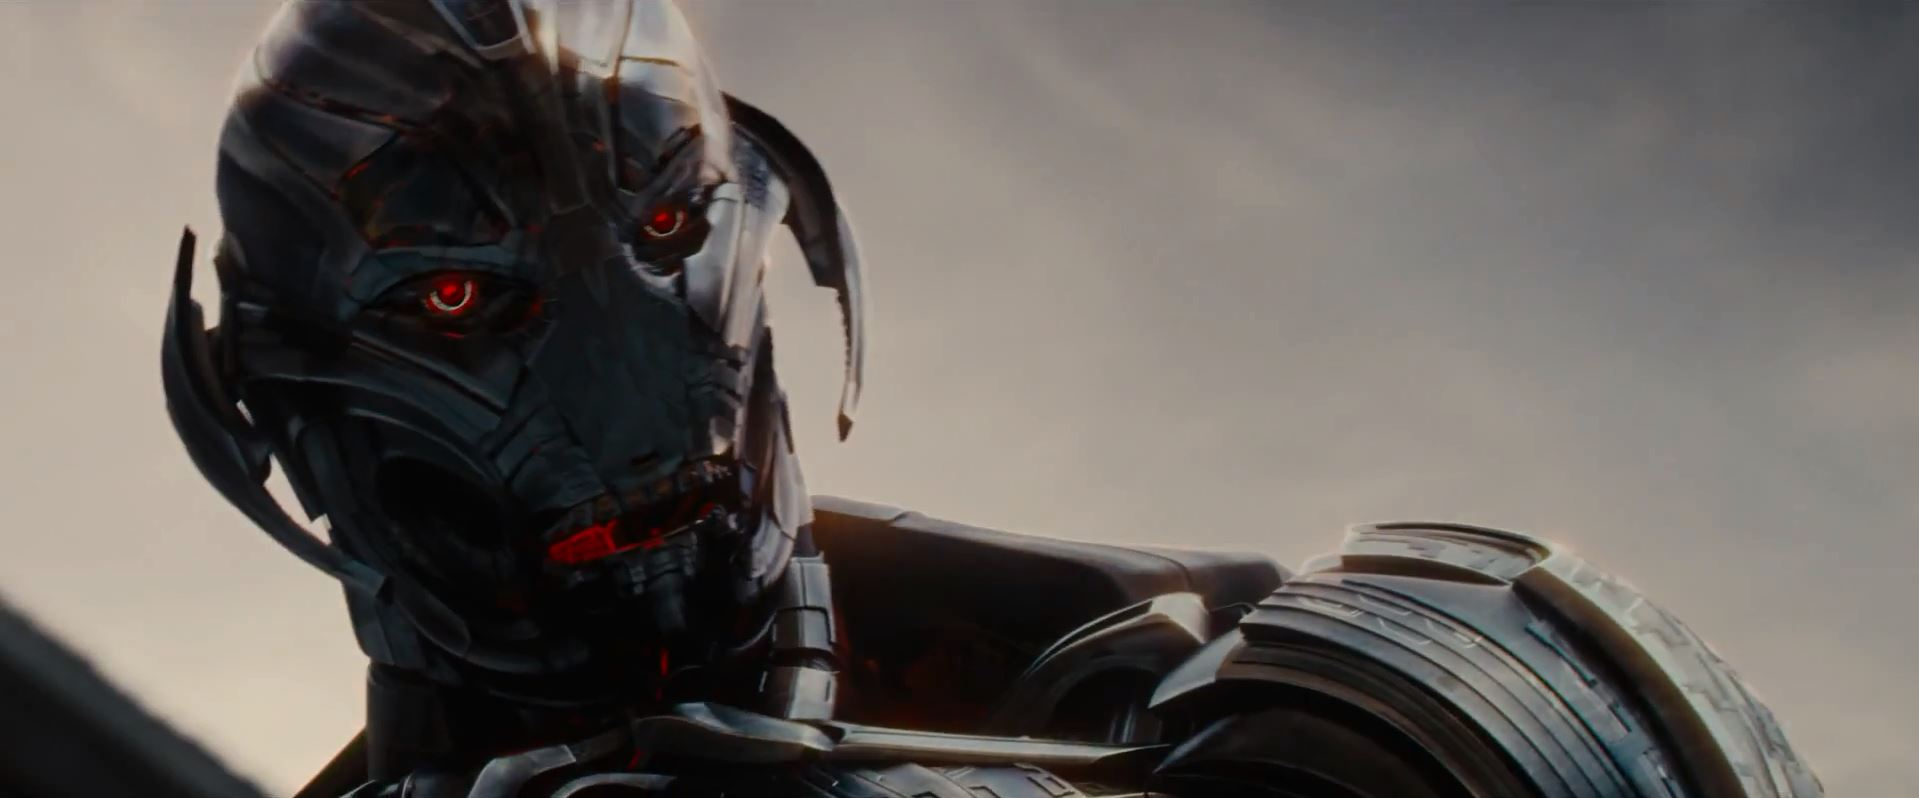 Avengers Age Of Ultron Trailer Released - Ultron (James Spader)